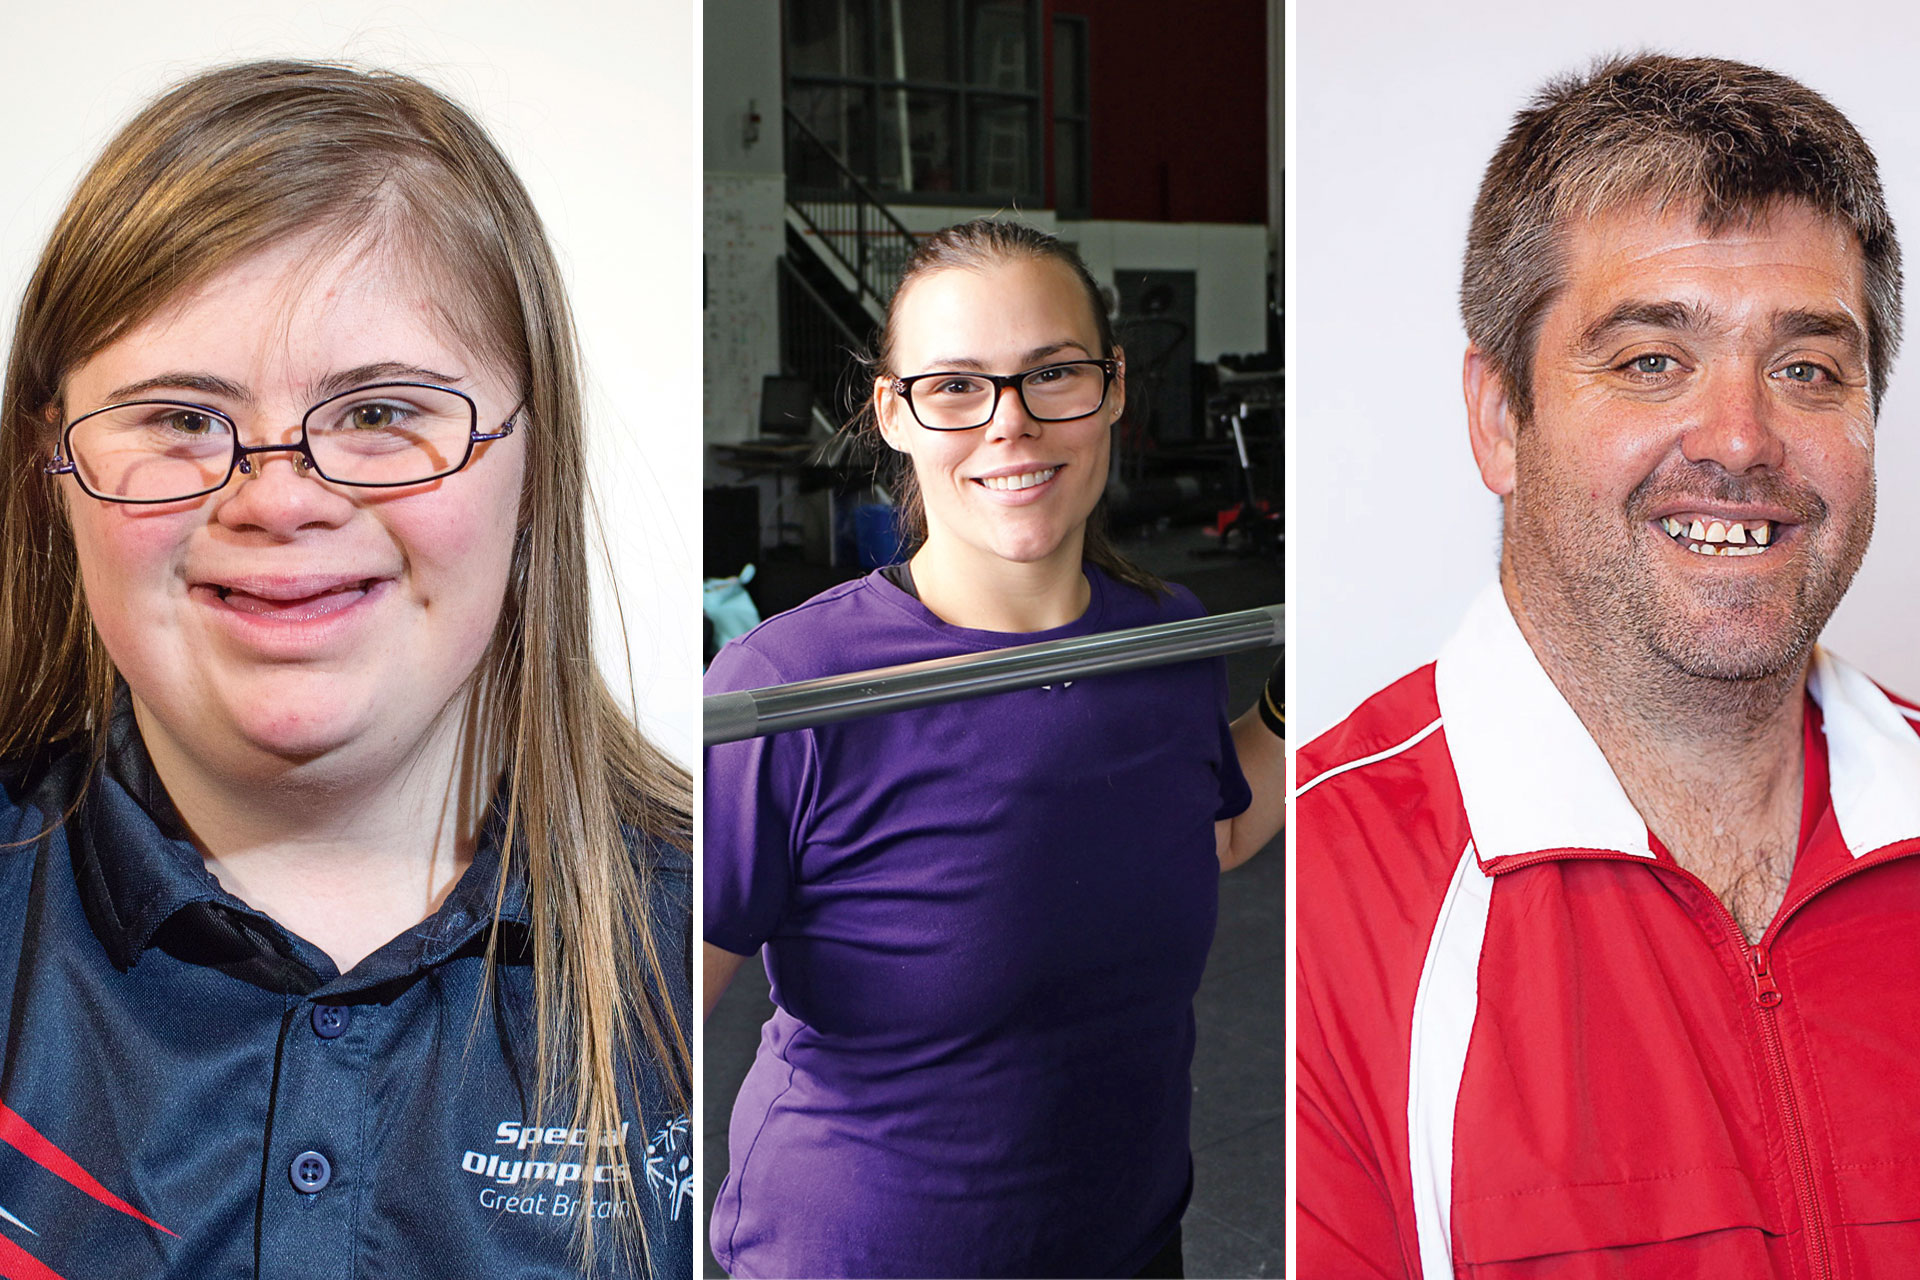 The Athletes At Special Olympics World Games Abu Dhabi